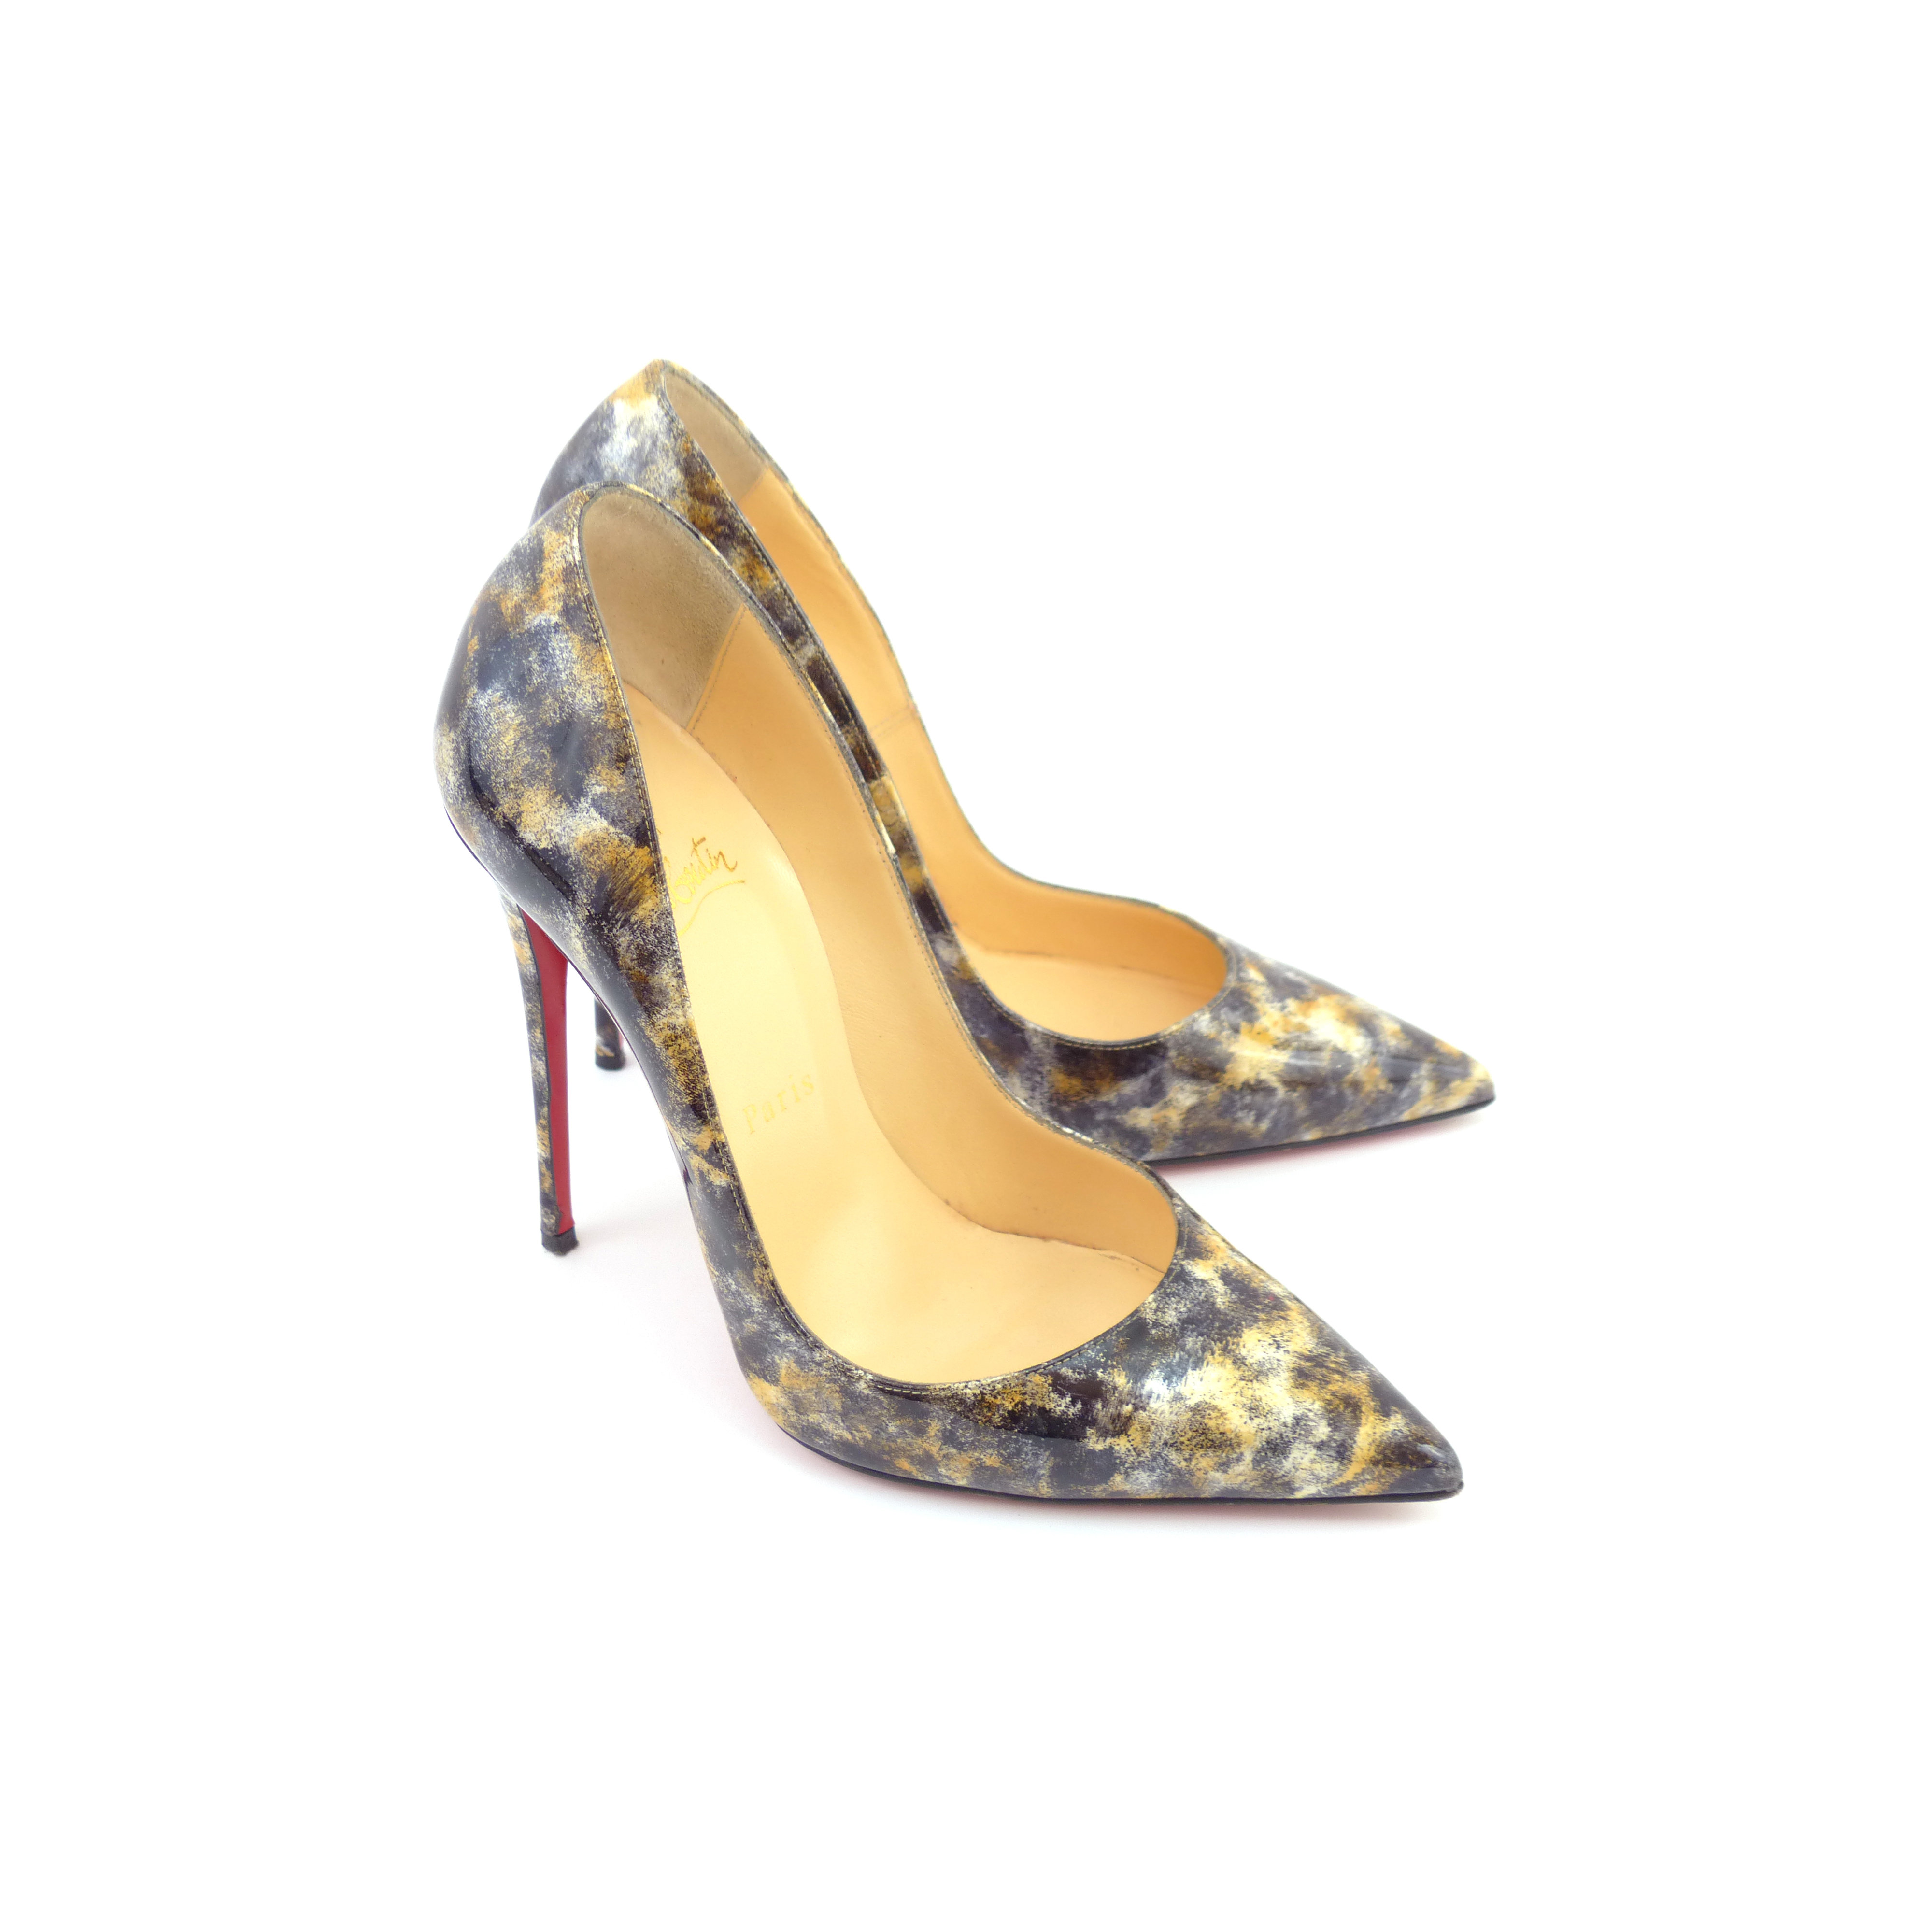 28a548d76938 Christian Louboutin  So Kate  Black Vernis Mouchete Patent Leather